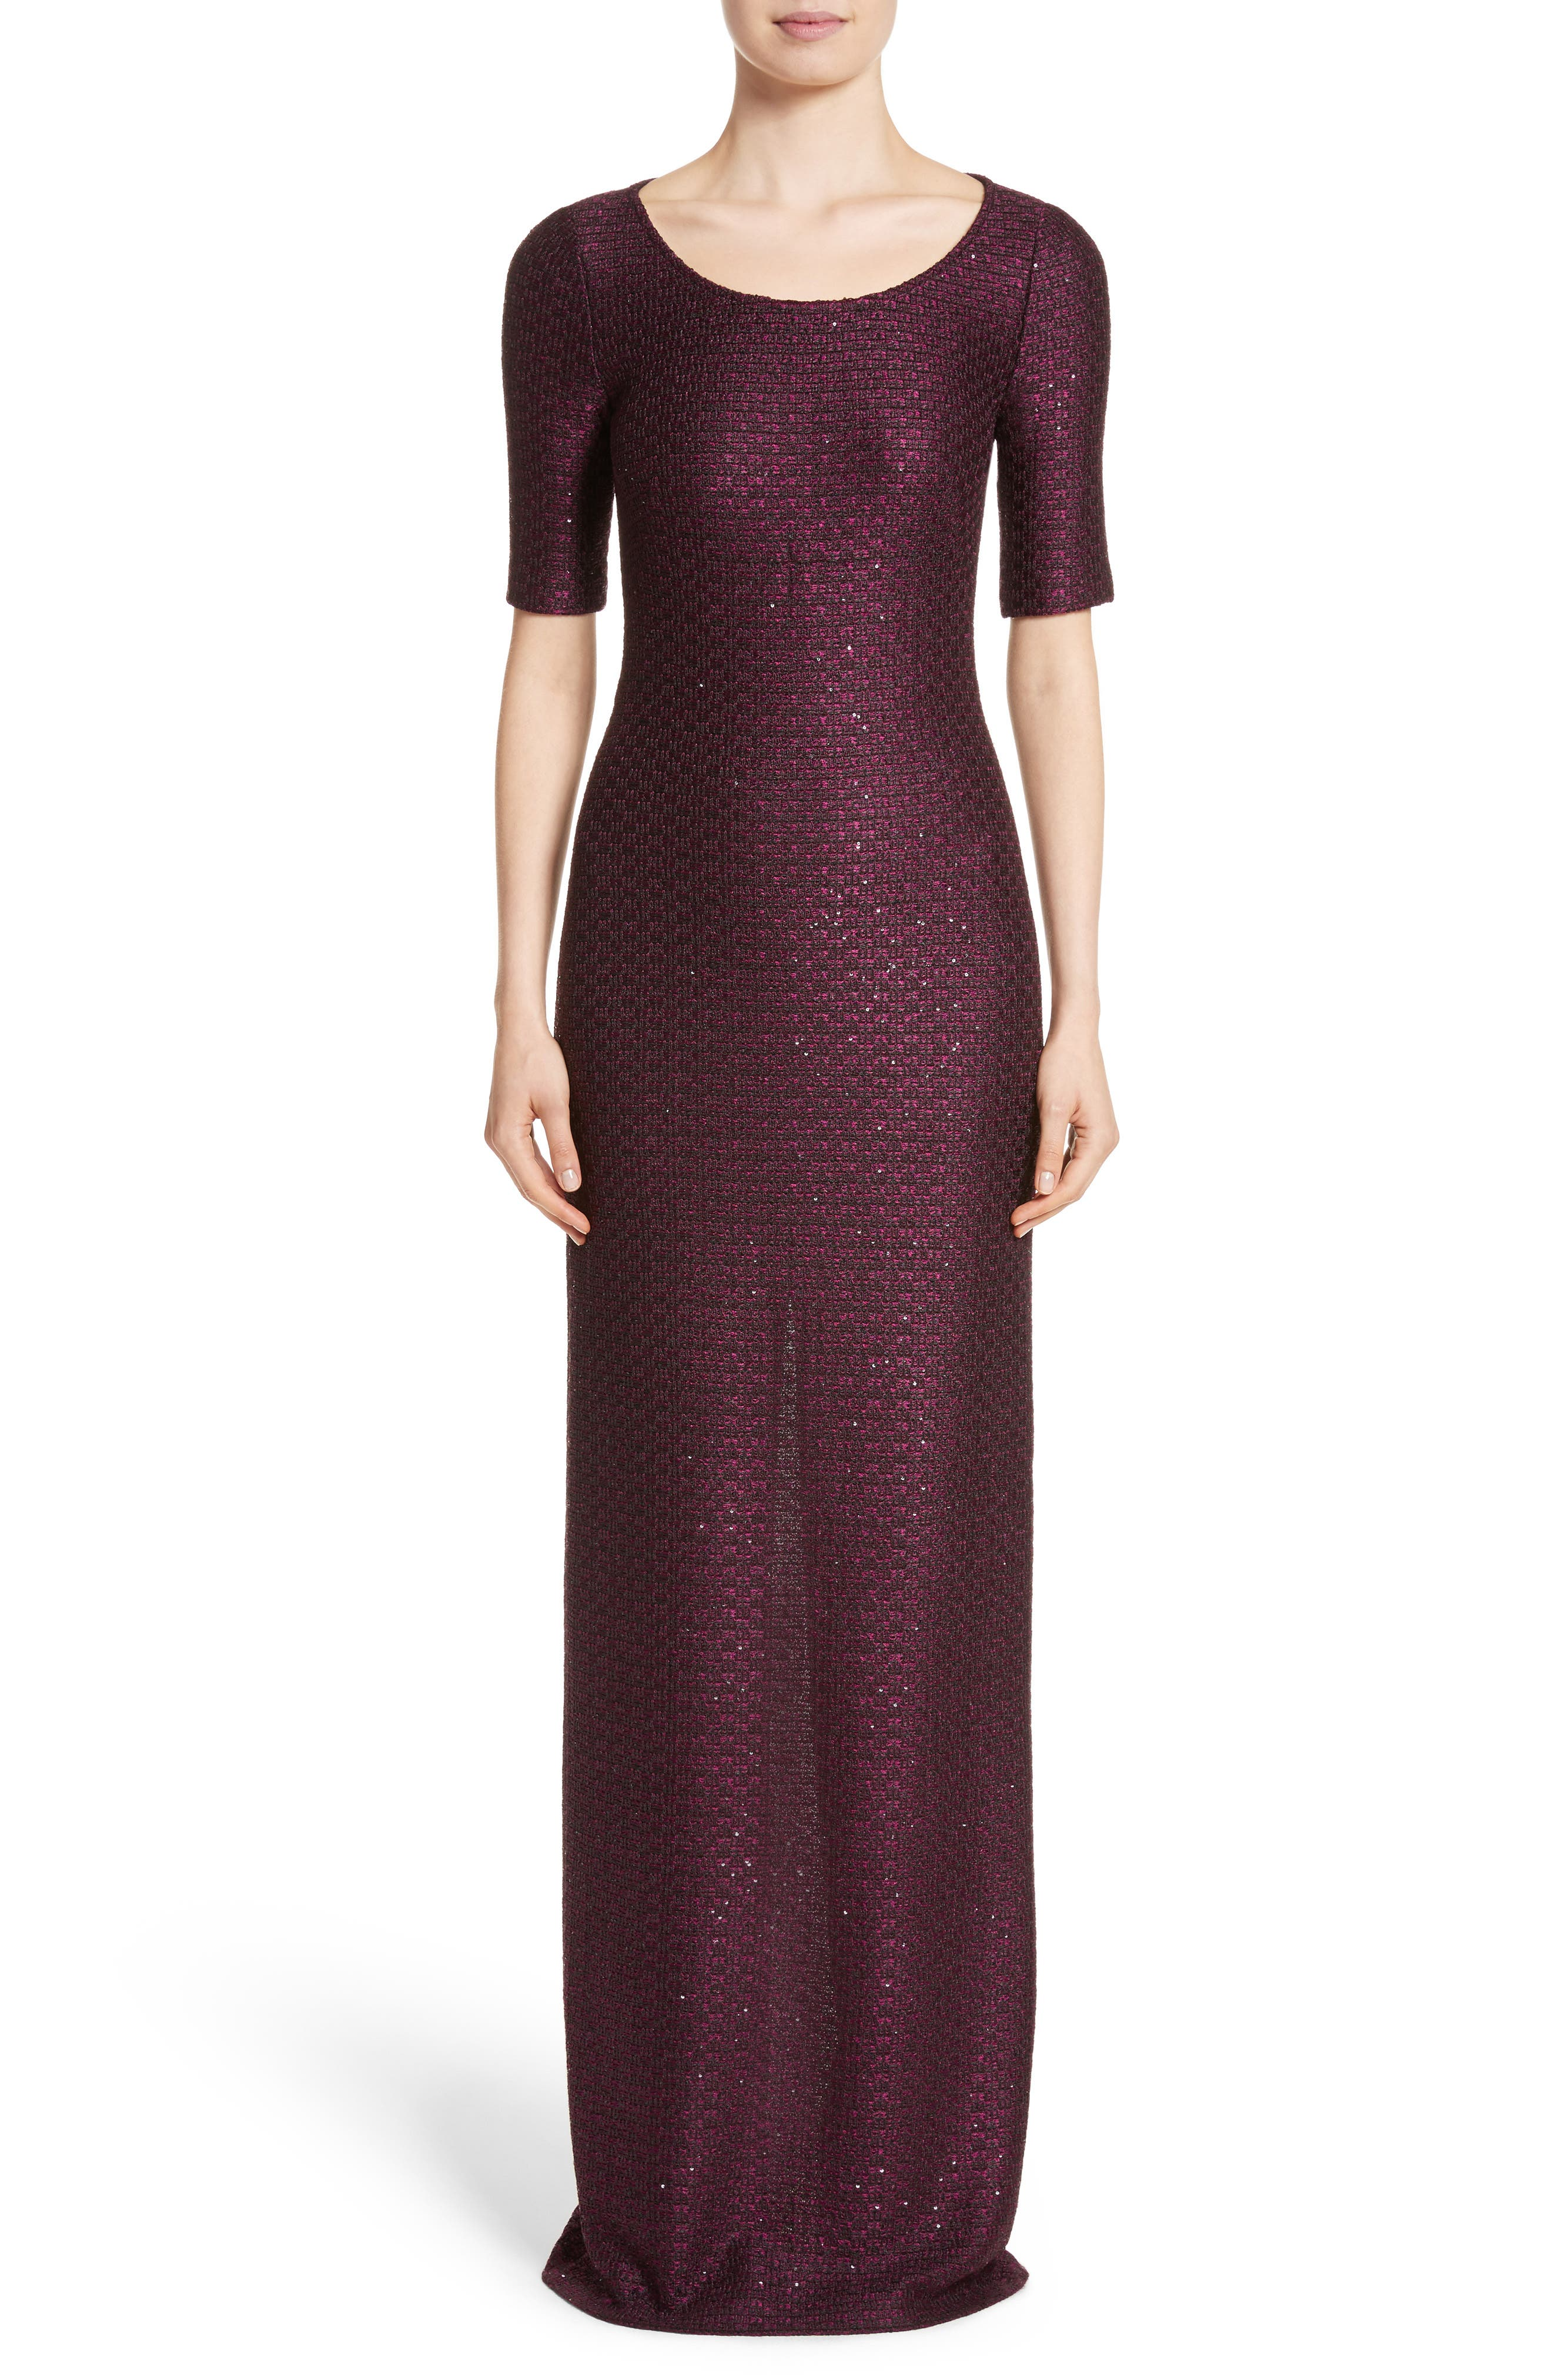 Alternate Image 1 Selected - St. John Evening Scooped Neck Hansh Knit Column Gown